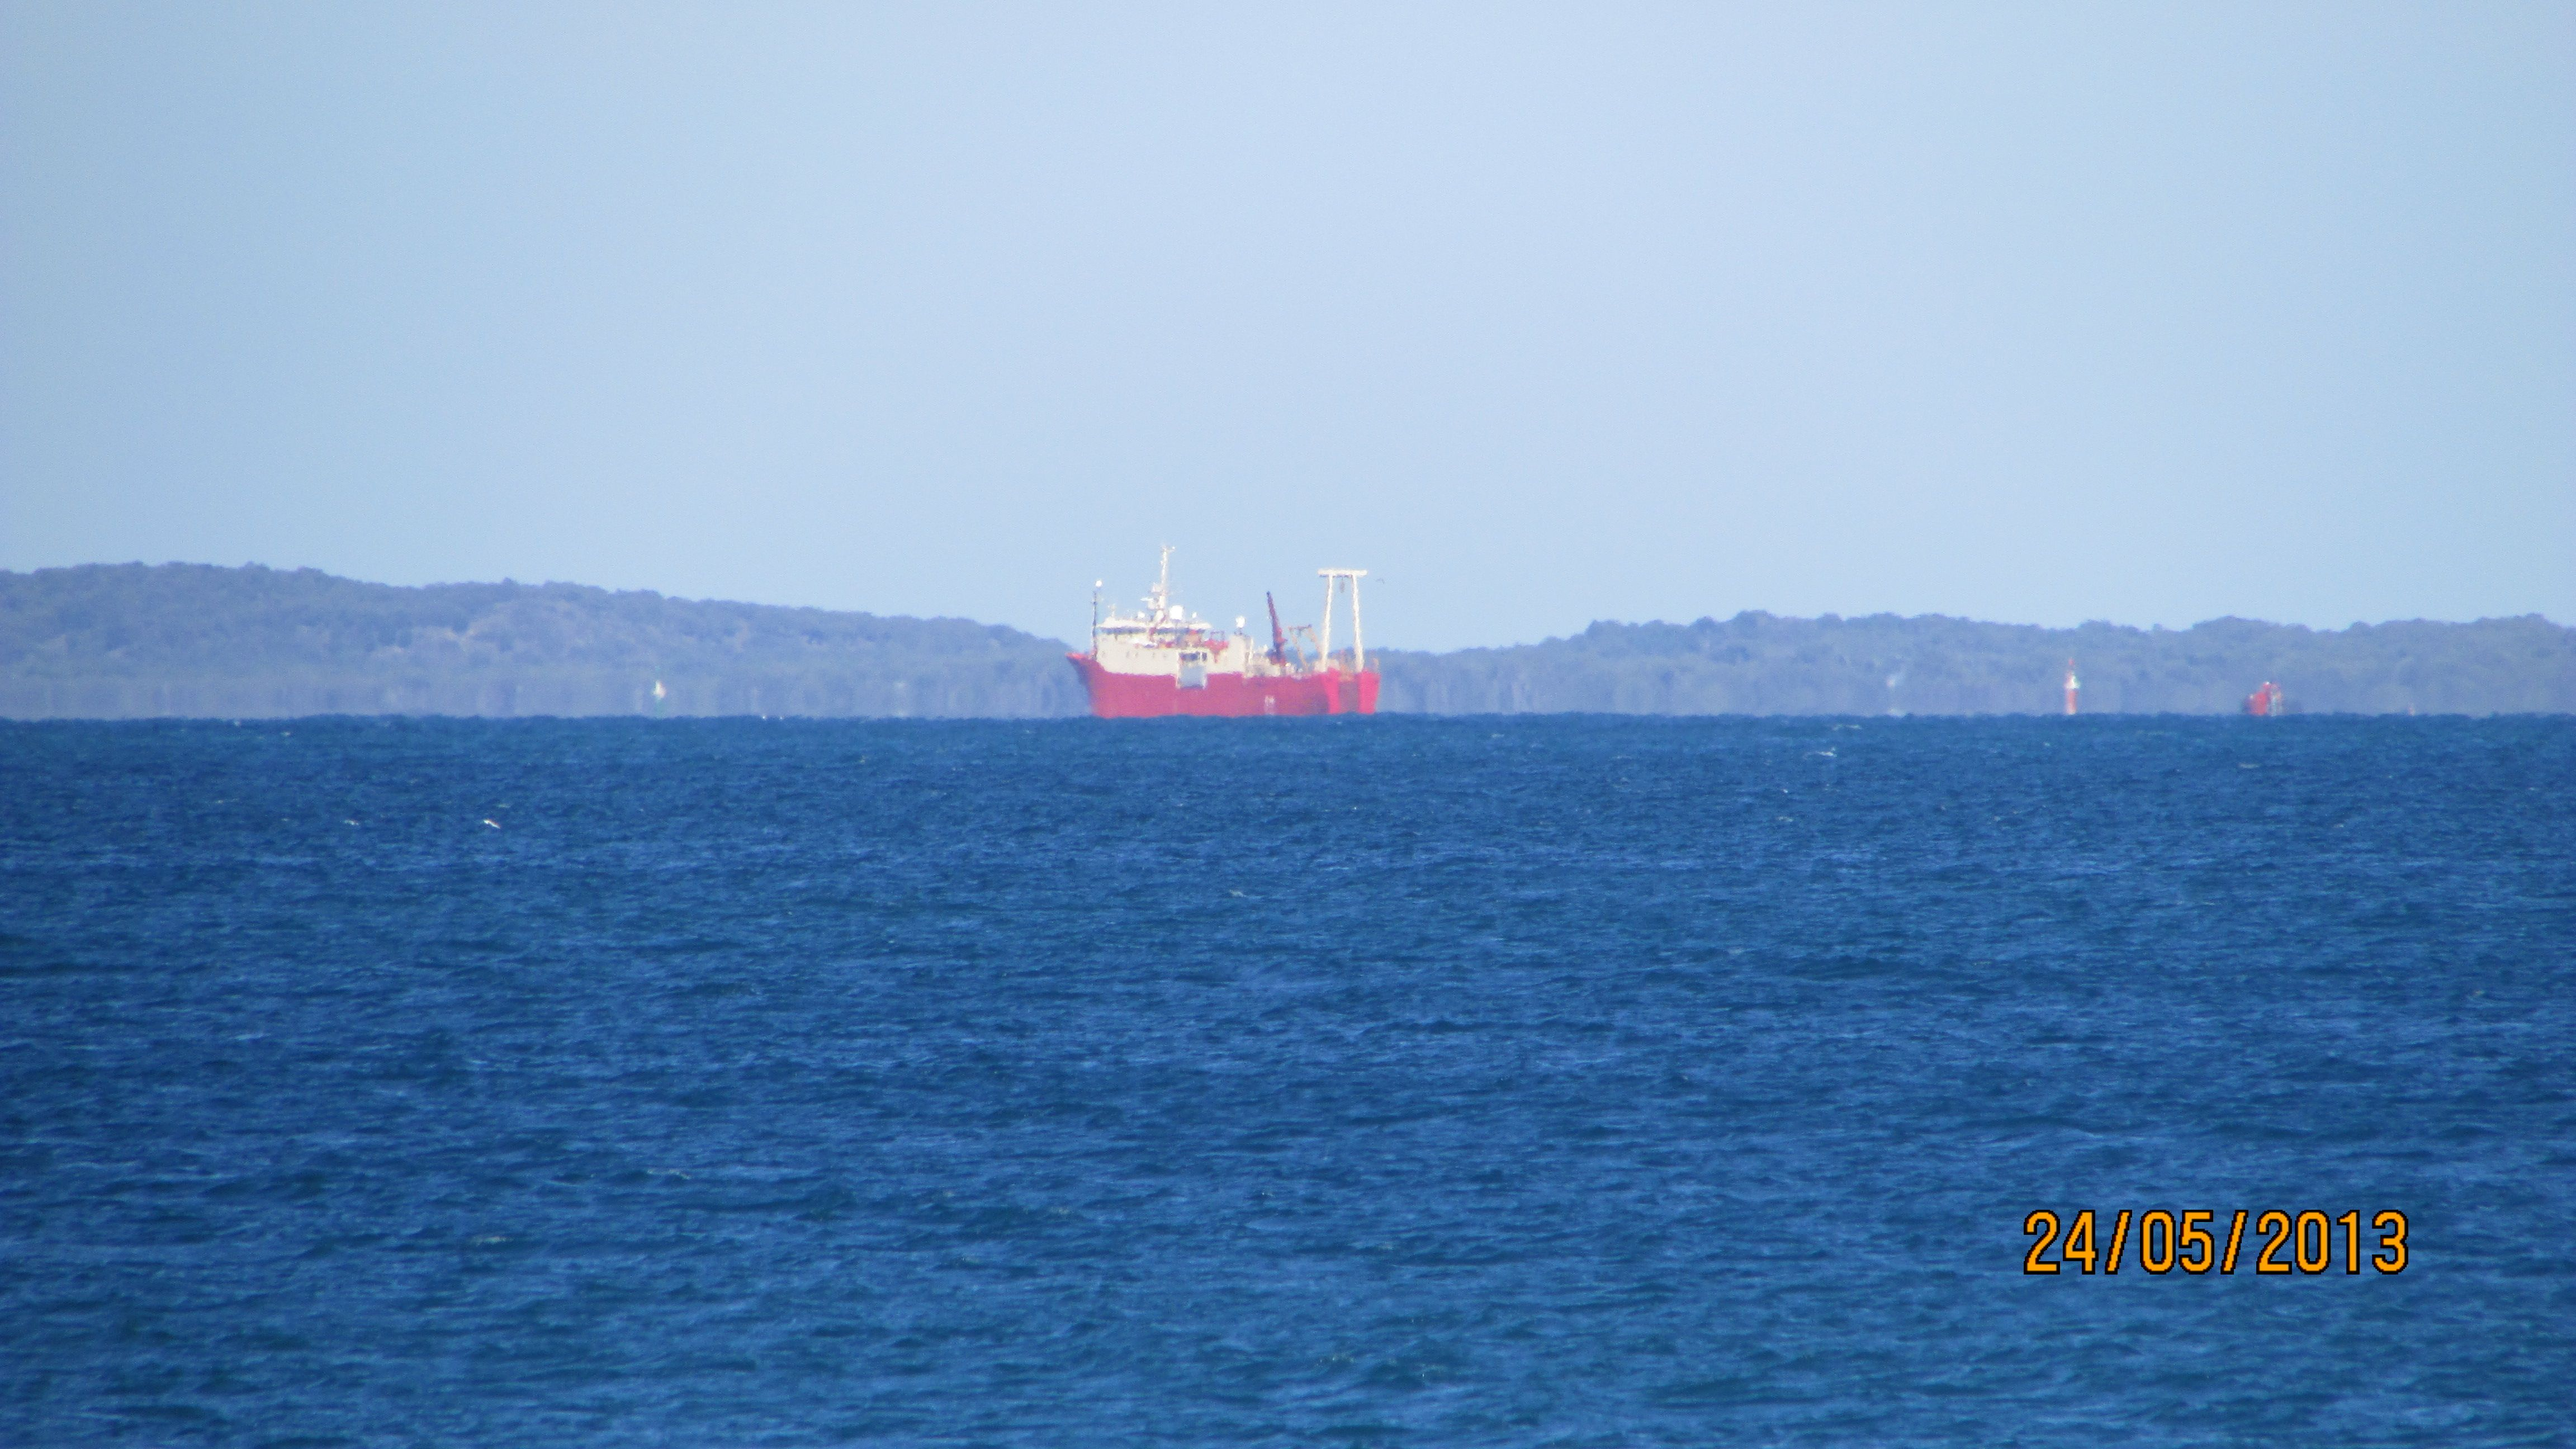 Photo Taken From South Mole Ship Anchored In Cockburn